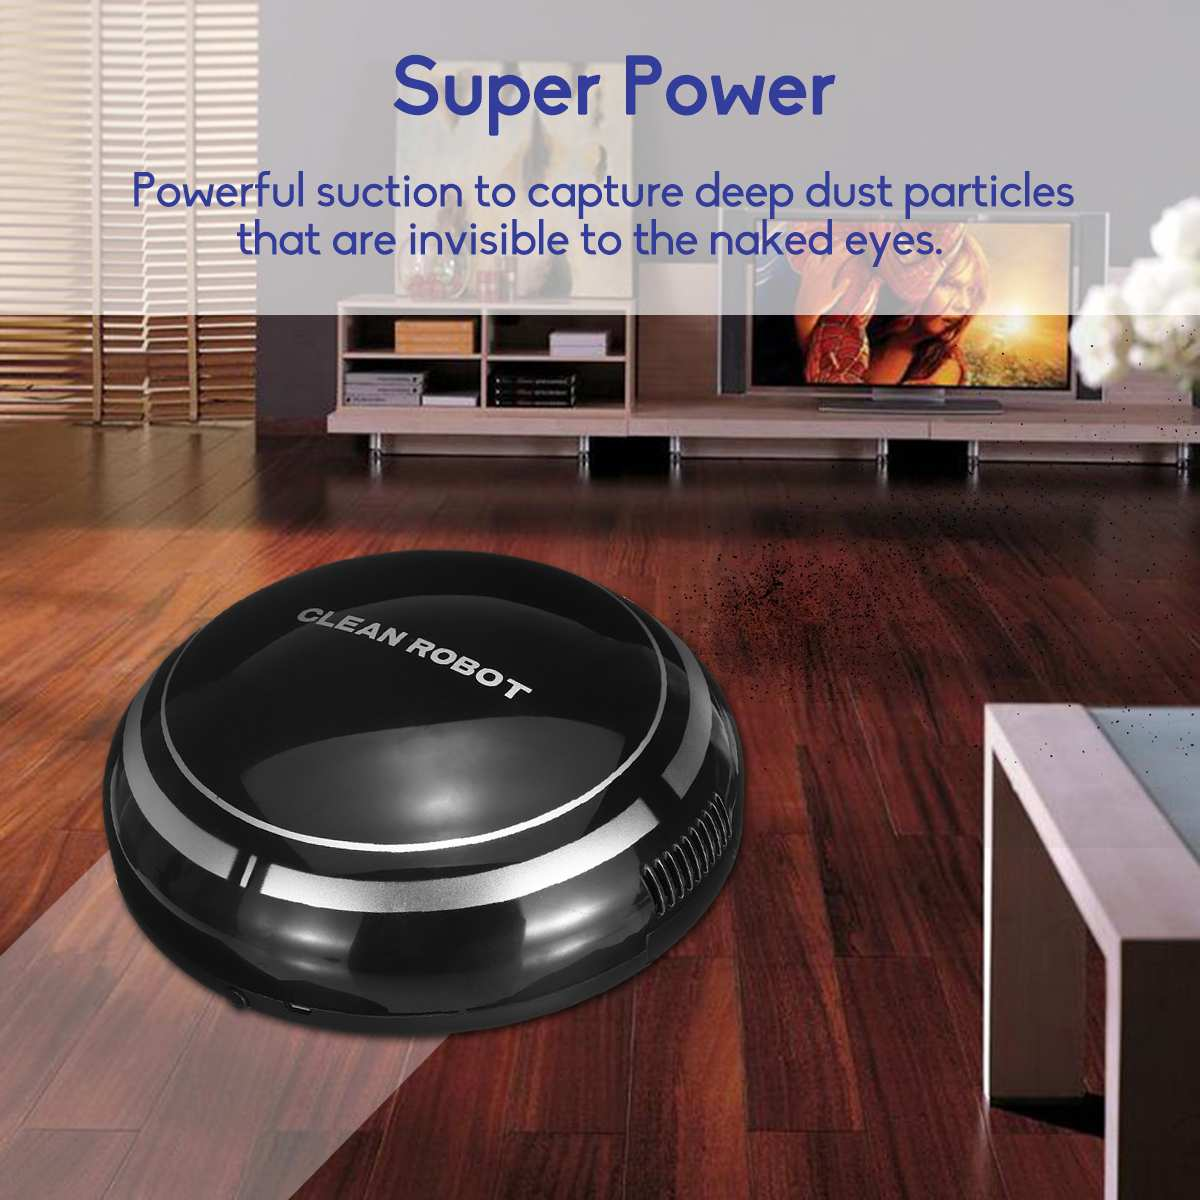 Hd594c2a5d0f8408fb174e84608d364d8Z Smart Automatic Robot Vacuum Cleaning Machine Intelligent Floor Sweeping Dust Catcher Carpet Cleaner For Home Automatic Cleaning